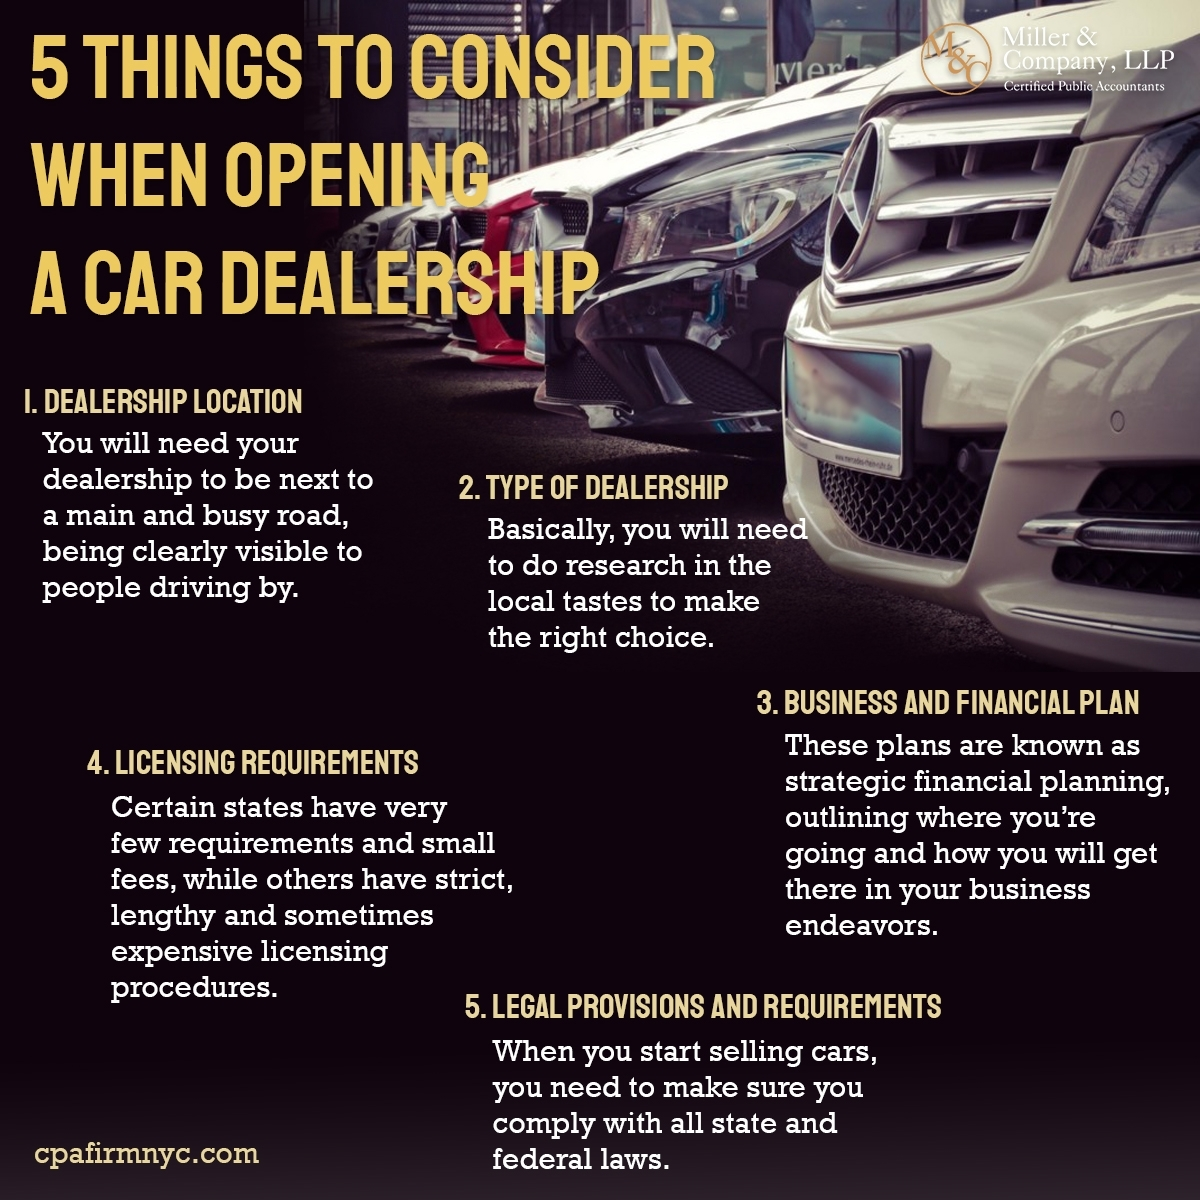 5 Things to Consider When Opening a Car Dealership